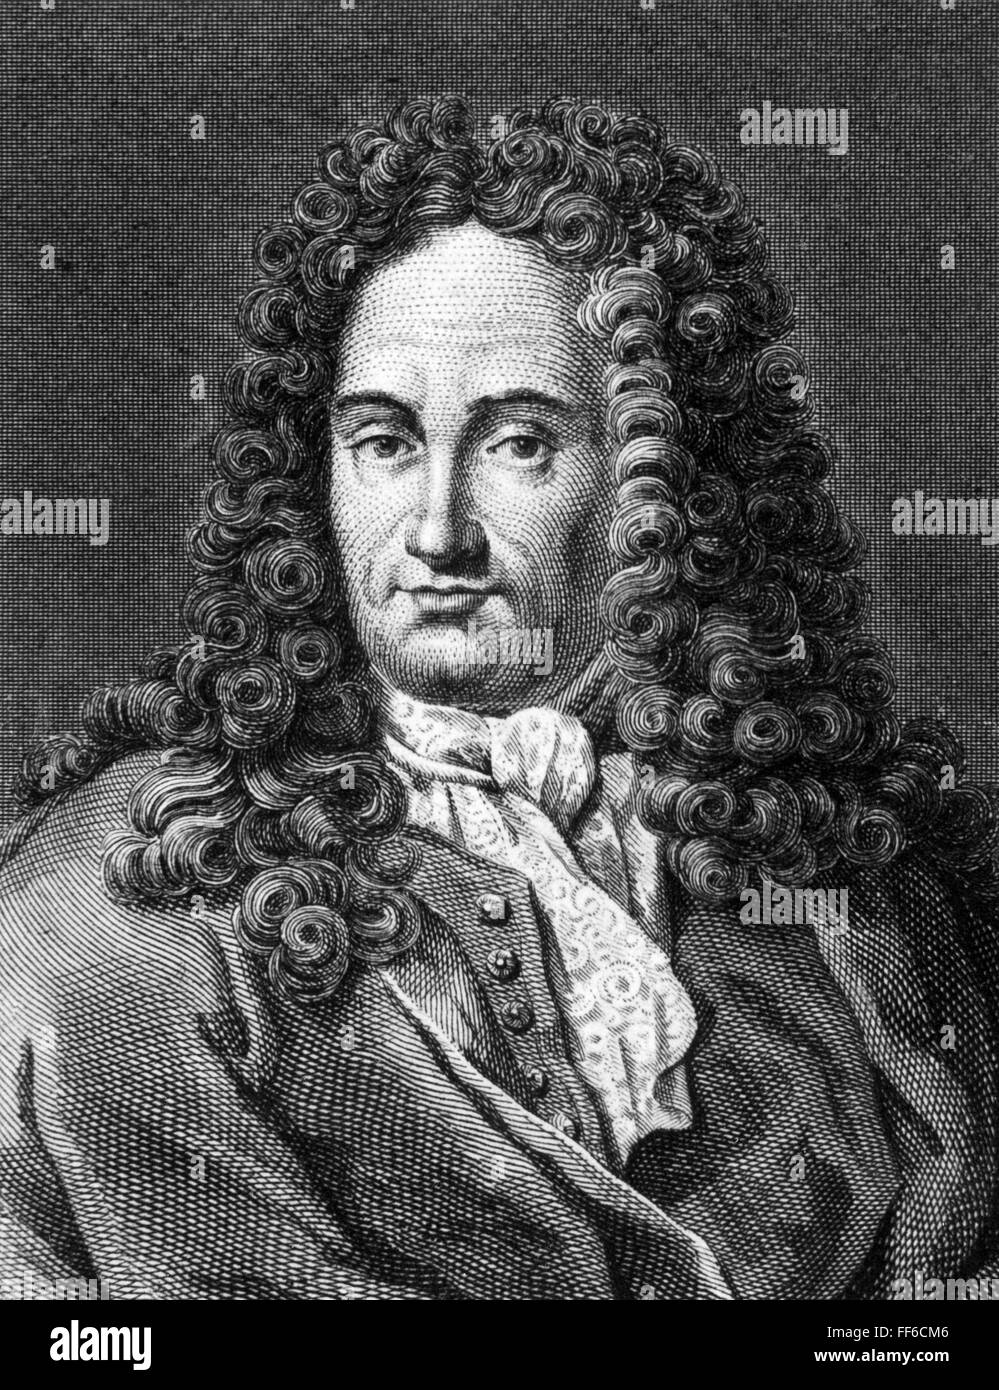 account of the life and accomplishments of gottfried von leibniz Life gottfried wilhelm leibniz was born in leipzig, germany, on july 1  moreover, a list of his significant contributions is almost as long as account of the nature of reality, in particular his notion of substance as monads.